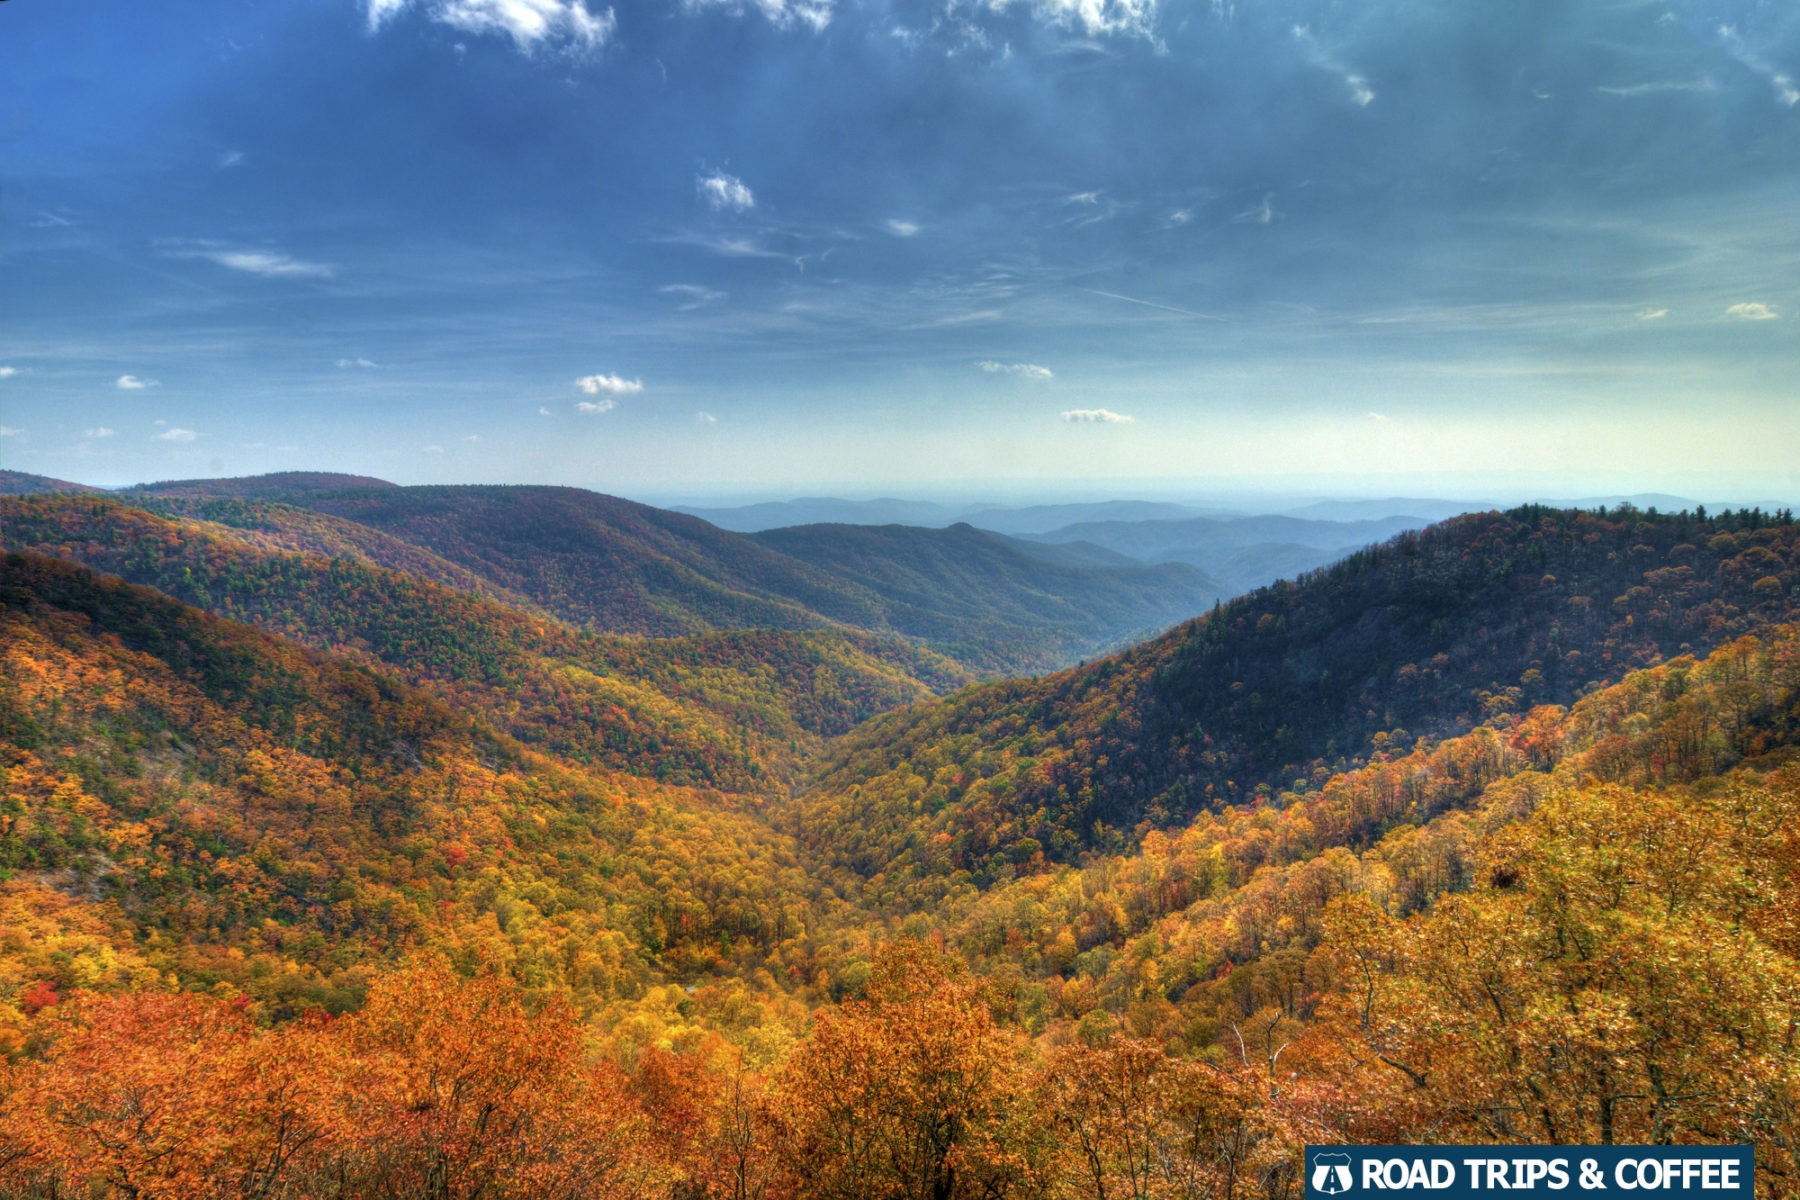 Brilliant autumn colors across the landscape at the Wildcat Rock Overlook on the Blue Ridge Parkway in North Carolina